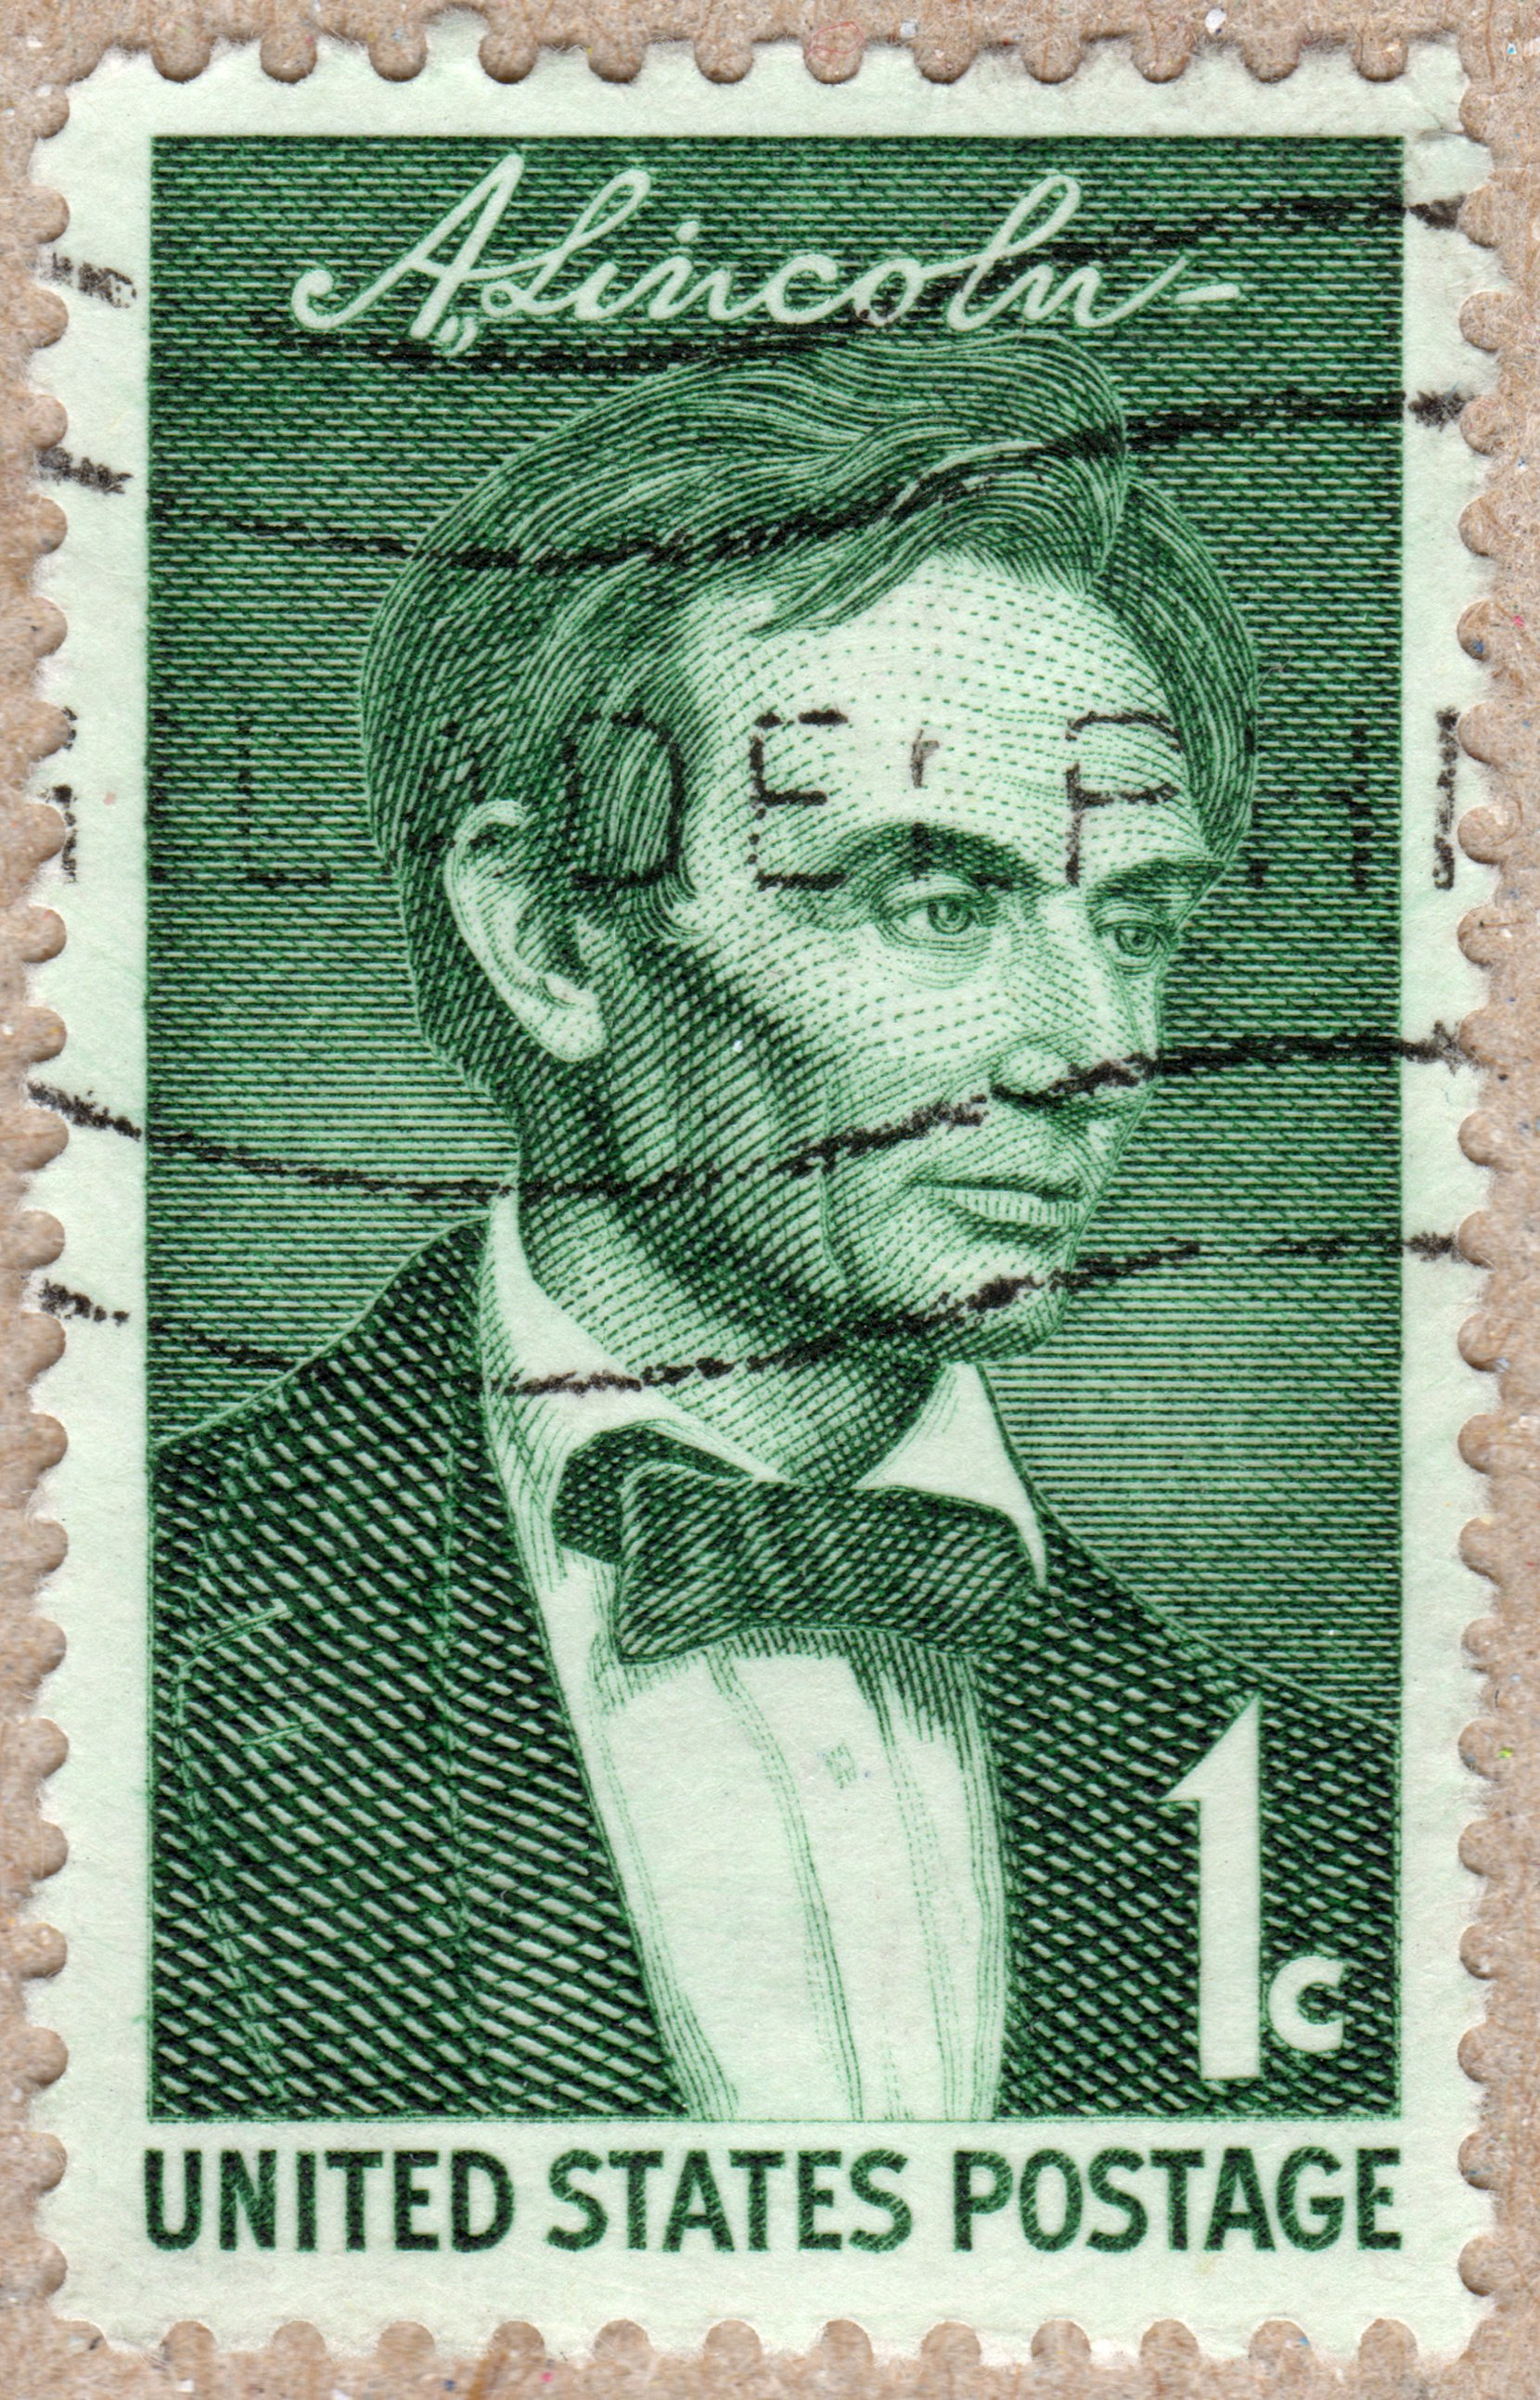 abraham lincoln usa 1¢ stamp philately postage stamps